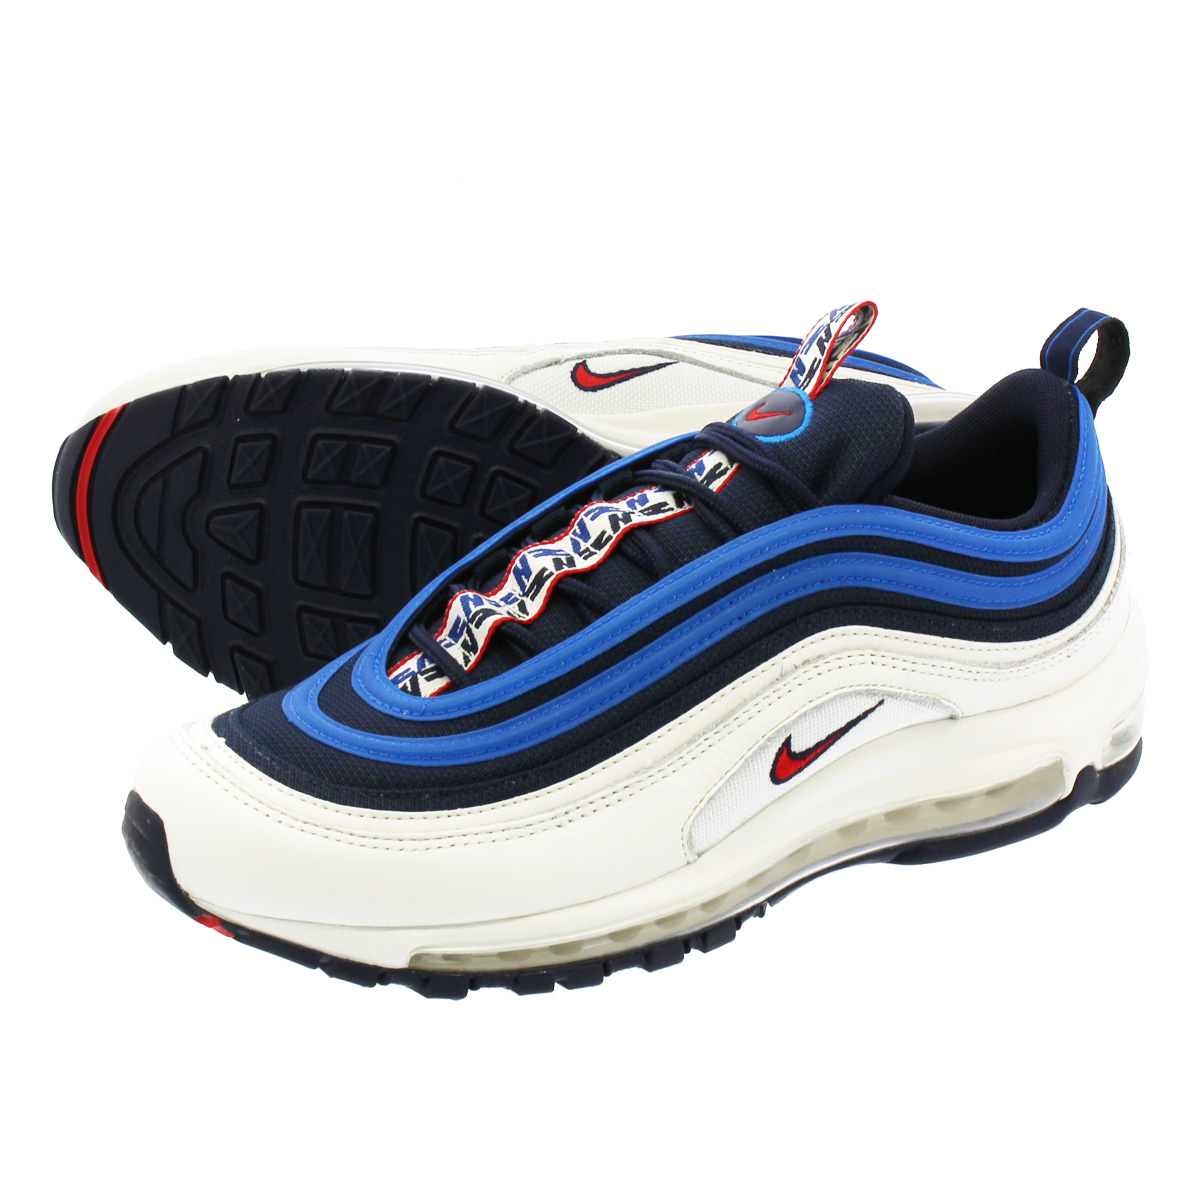 b631bb03b1 LOWTEX PLUS: NIKE AIR MAX 97 SE Kie Ney AMAX 97 SE OBSIDIAN/UNIVERSITY RED/ SAIL/BLUE NEBULA aq4126-400 | Rakuten Global Market